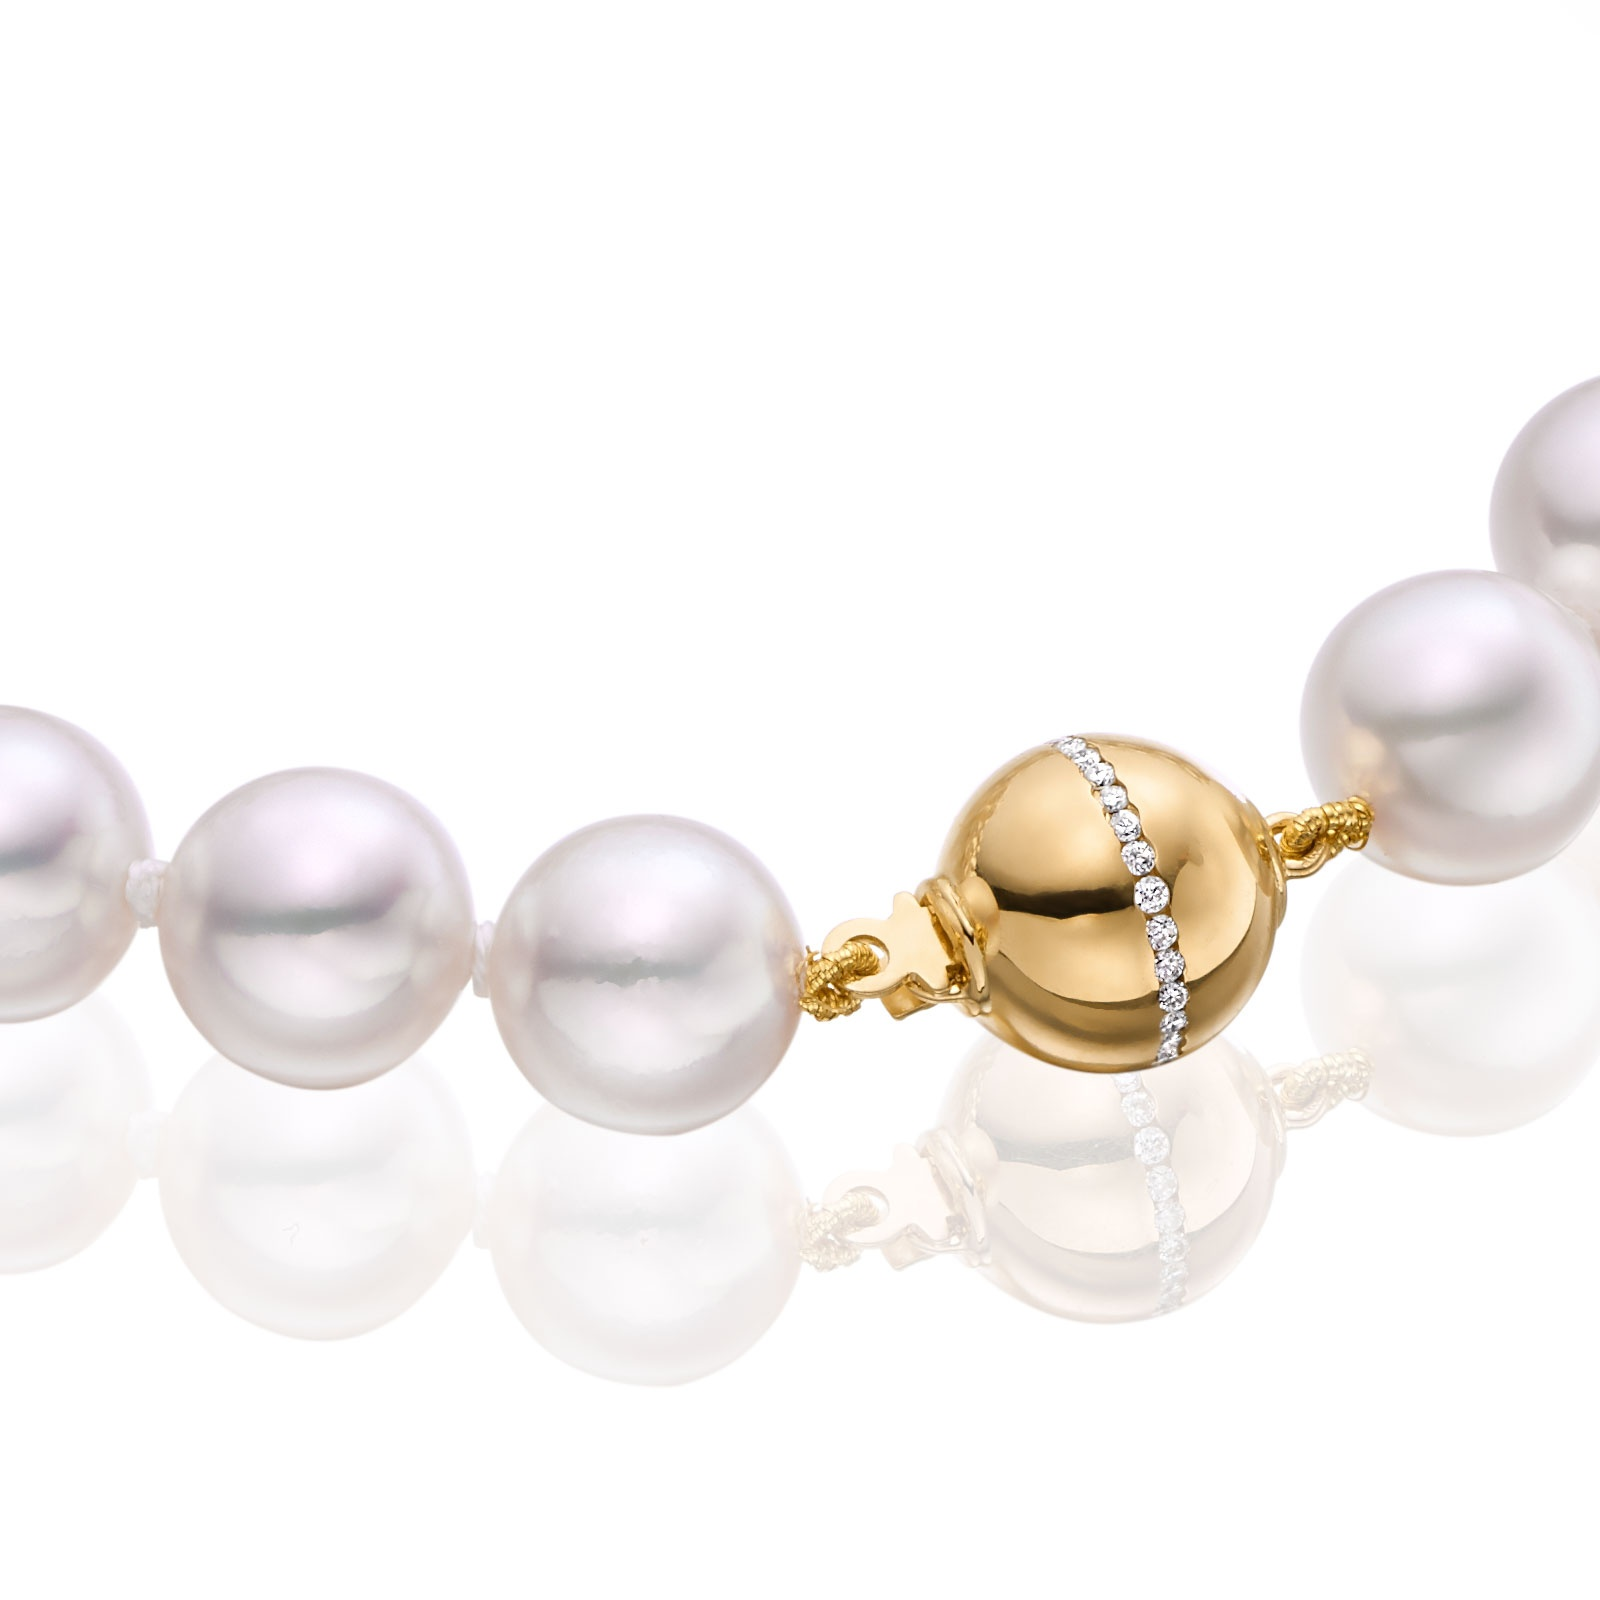 Serenade Diamond and Pearl Necklace in White Gold-ANWRYG0544-1